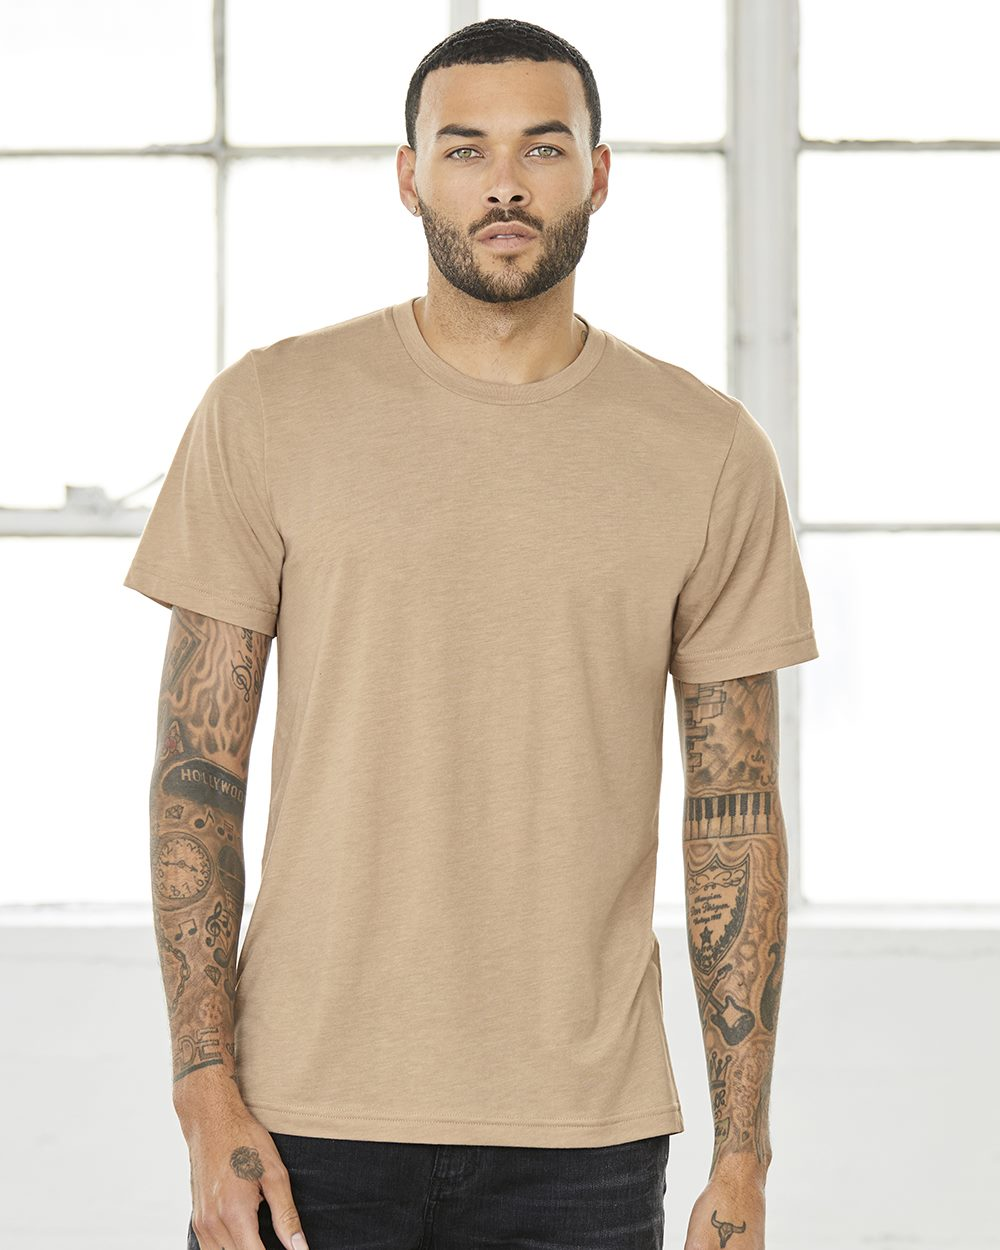 Bella 3413 - Men's TriBlend Short-Sleeve Tee